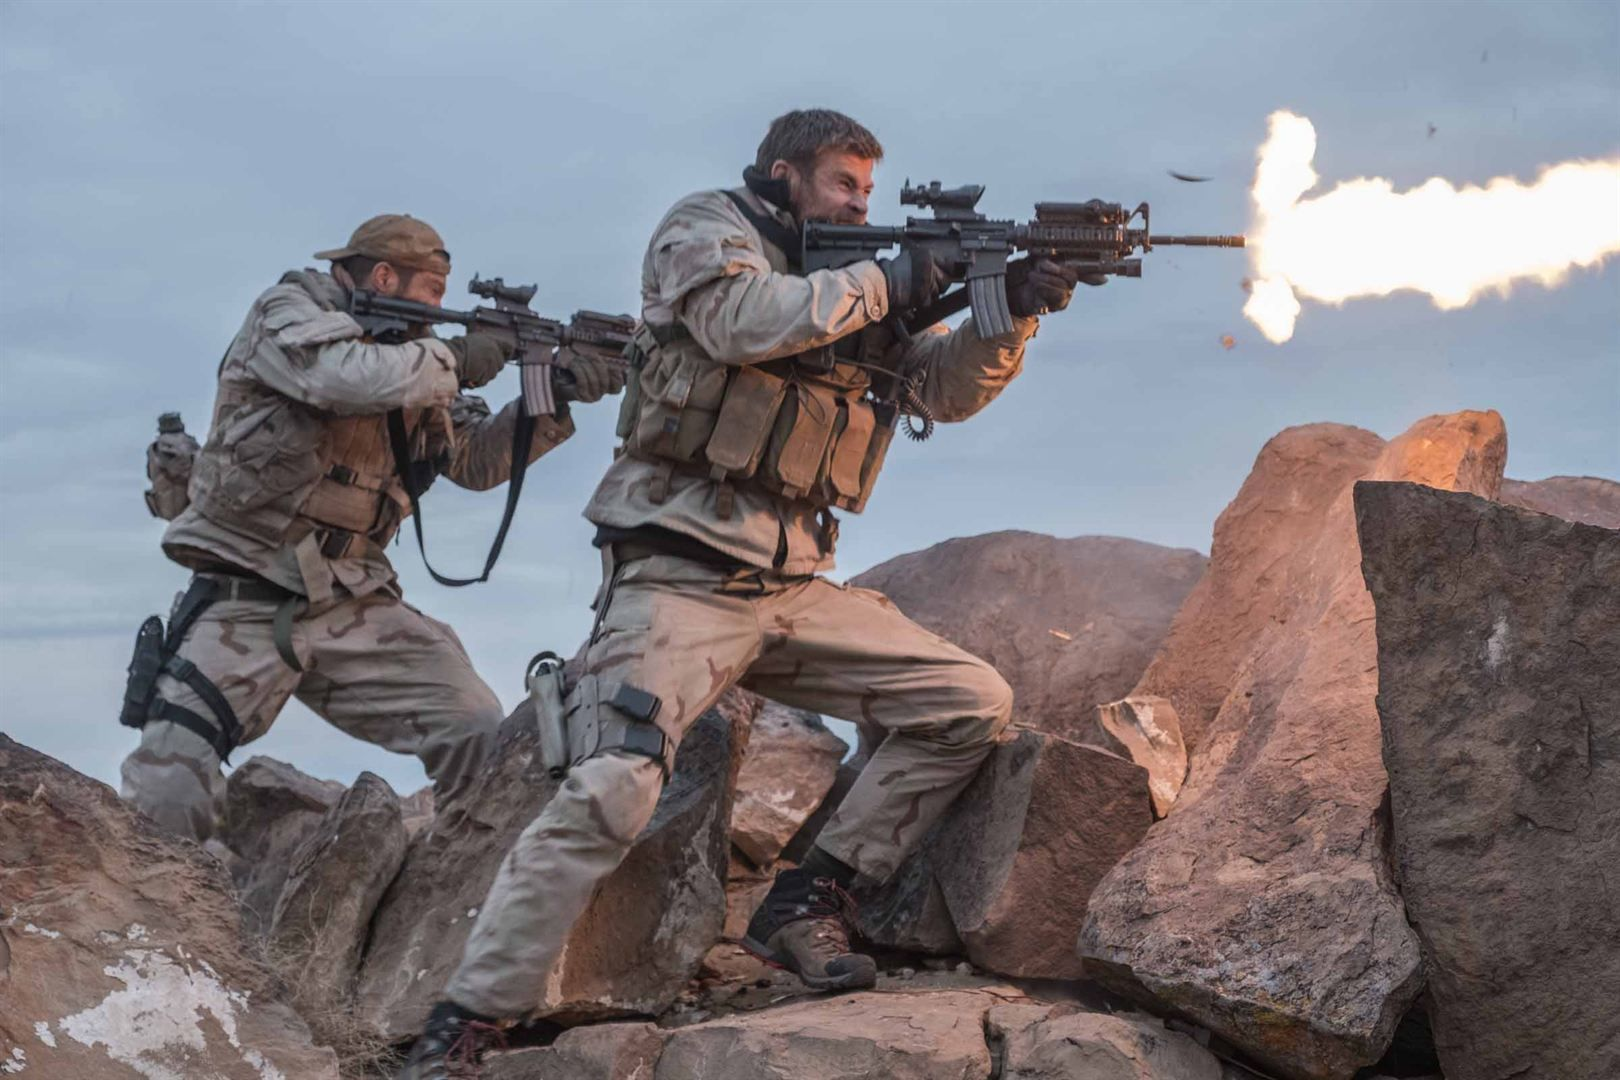 Horse Soldiers Film Complet Streaming Vf Entier Francais Films Complets Film Chris Hemsworth